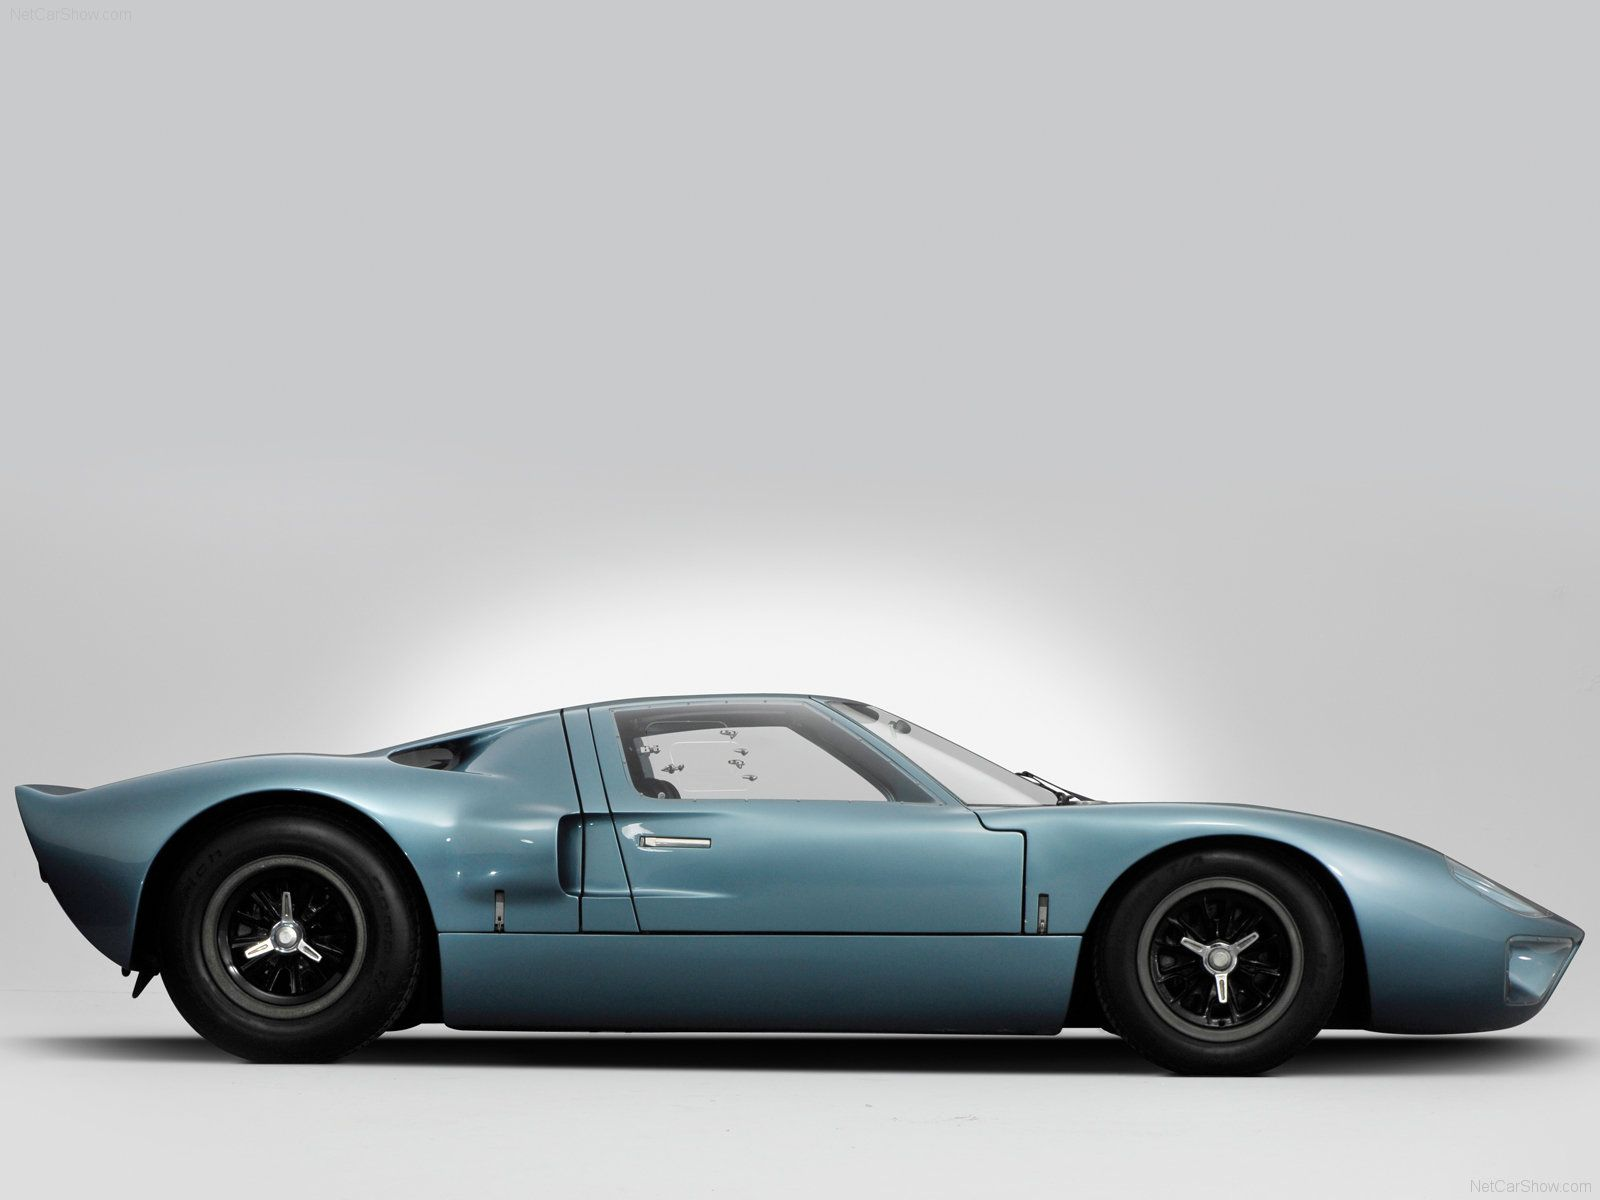 Ford Gt The Car Ford Built With Shelbys Help To Beat Ferrari At Le Mans Beat Them It Did The  In The Name Refers To The Cars Height As In The